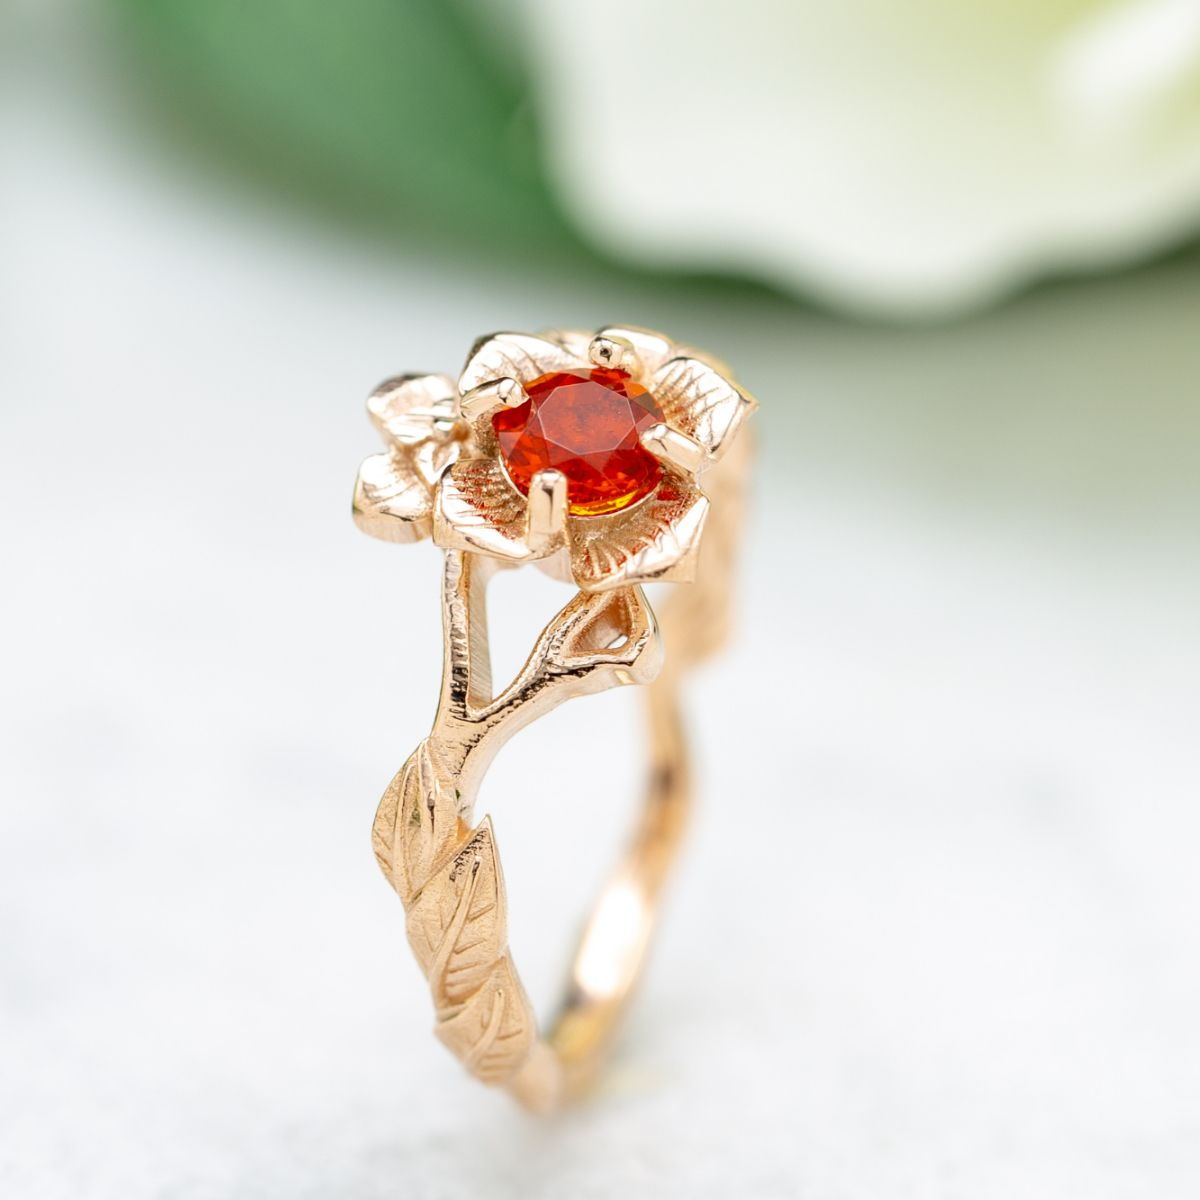 Inspired by the persimmon, the blossom in this rose gold ring features a cherry fire